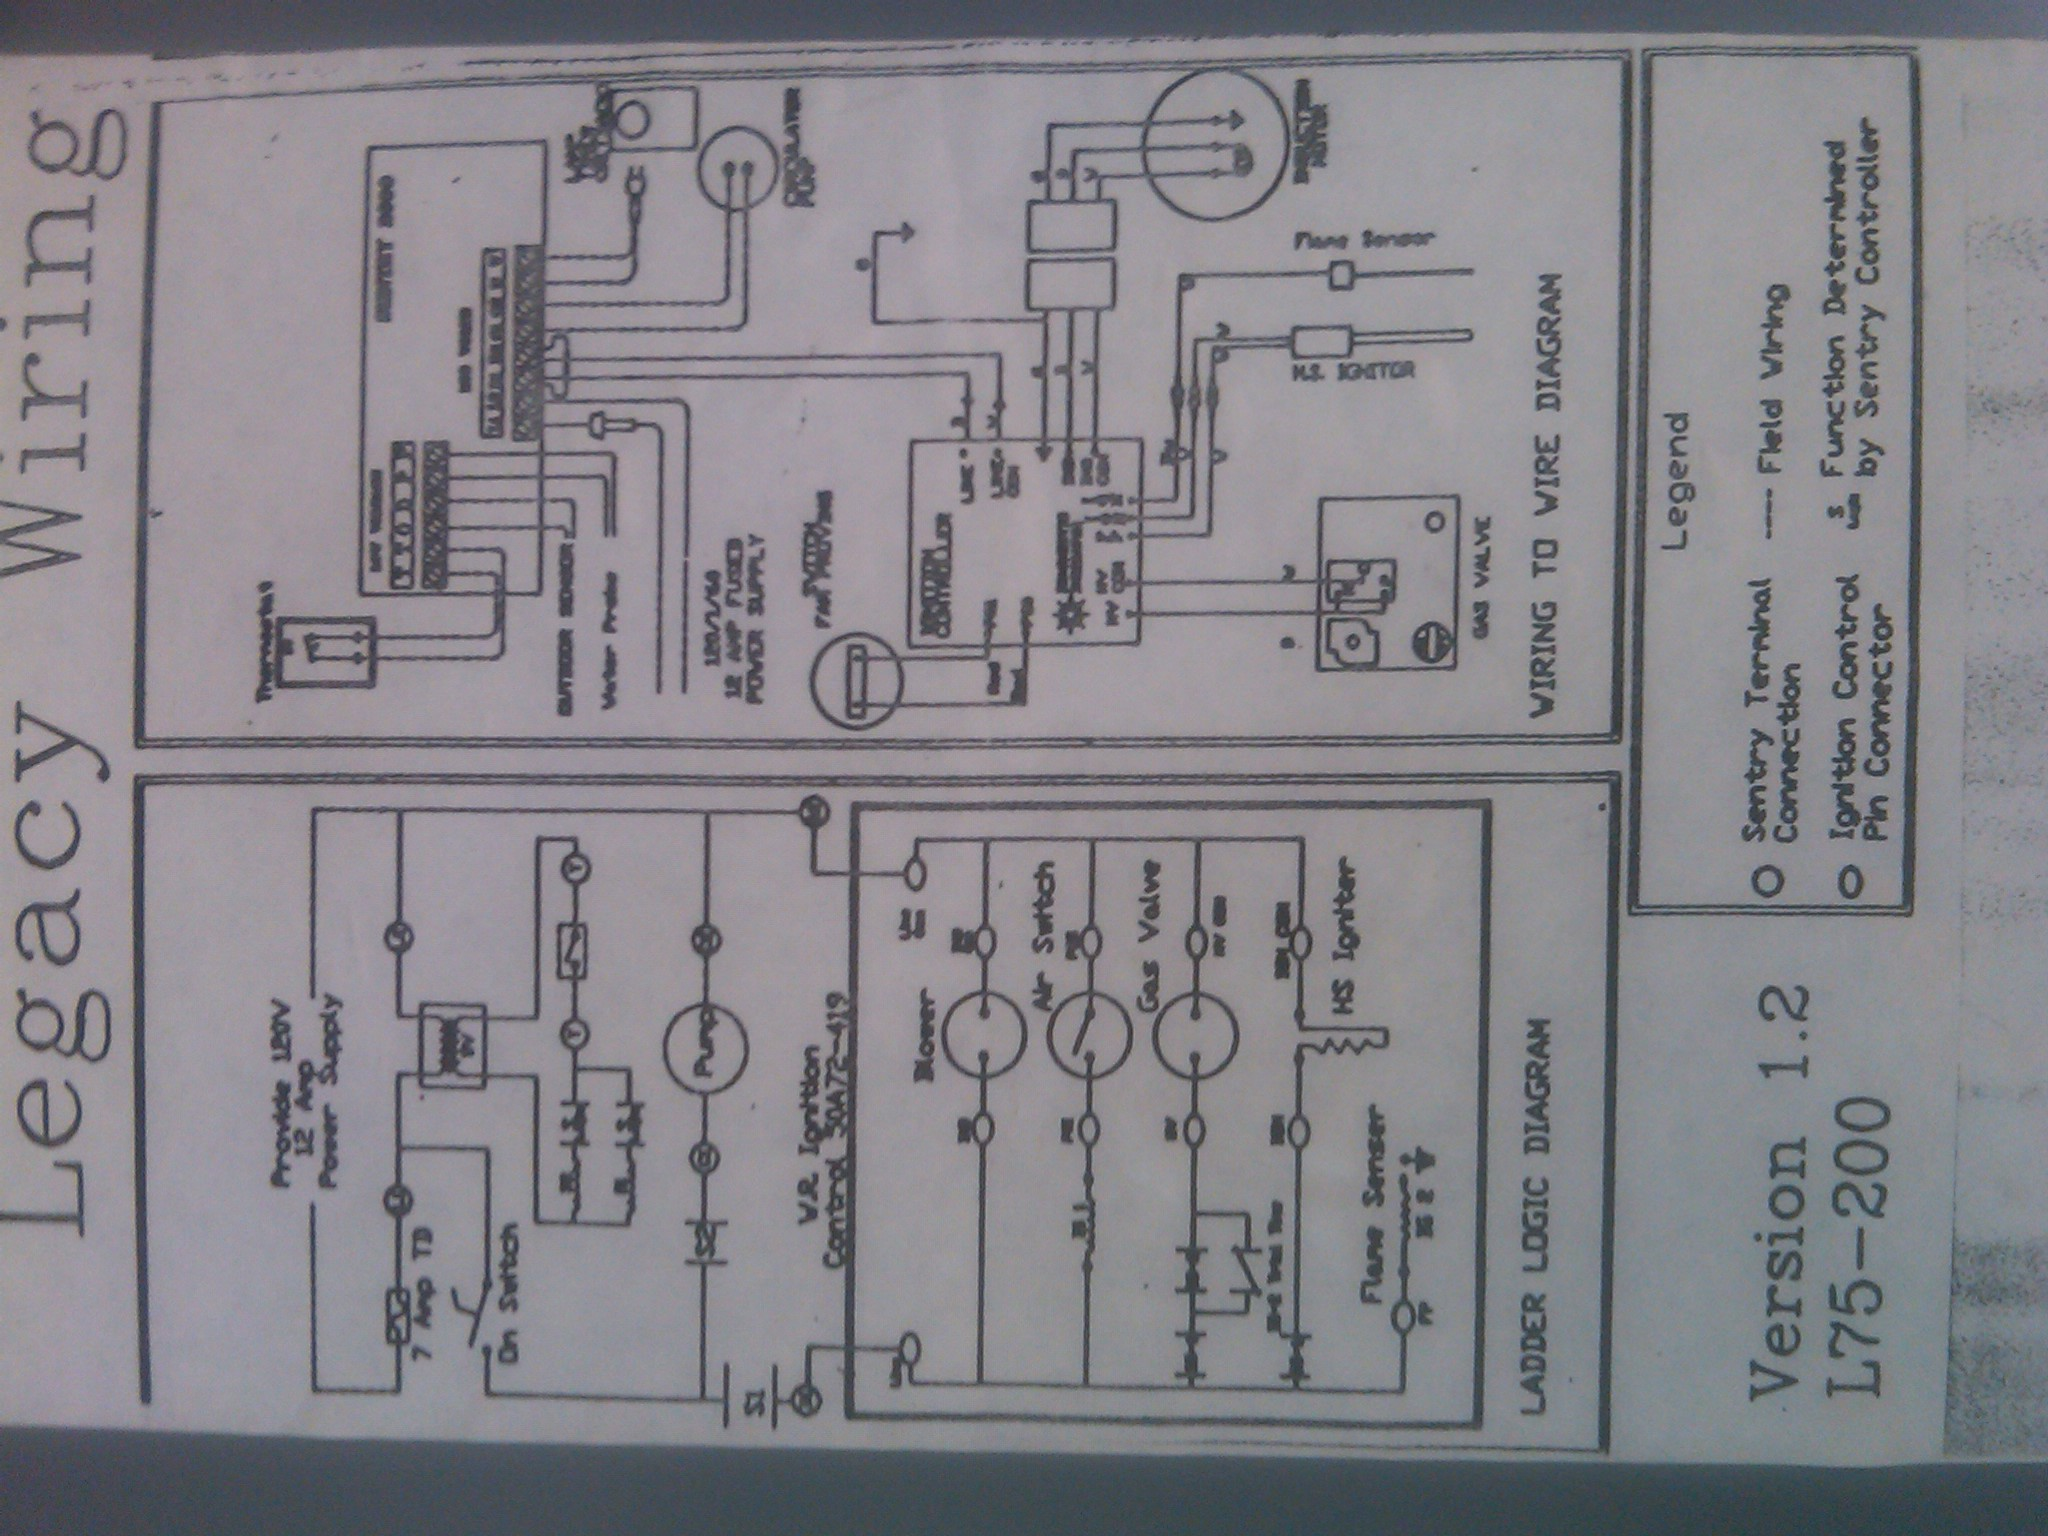 Residential Boiler Wiring Diagram Library. Dunkirk Boiler Wiring Diagram Radio \u2022 Burnham. Wiring. Stove Ladder Wiring Diagram At Scoala.co